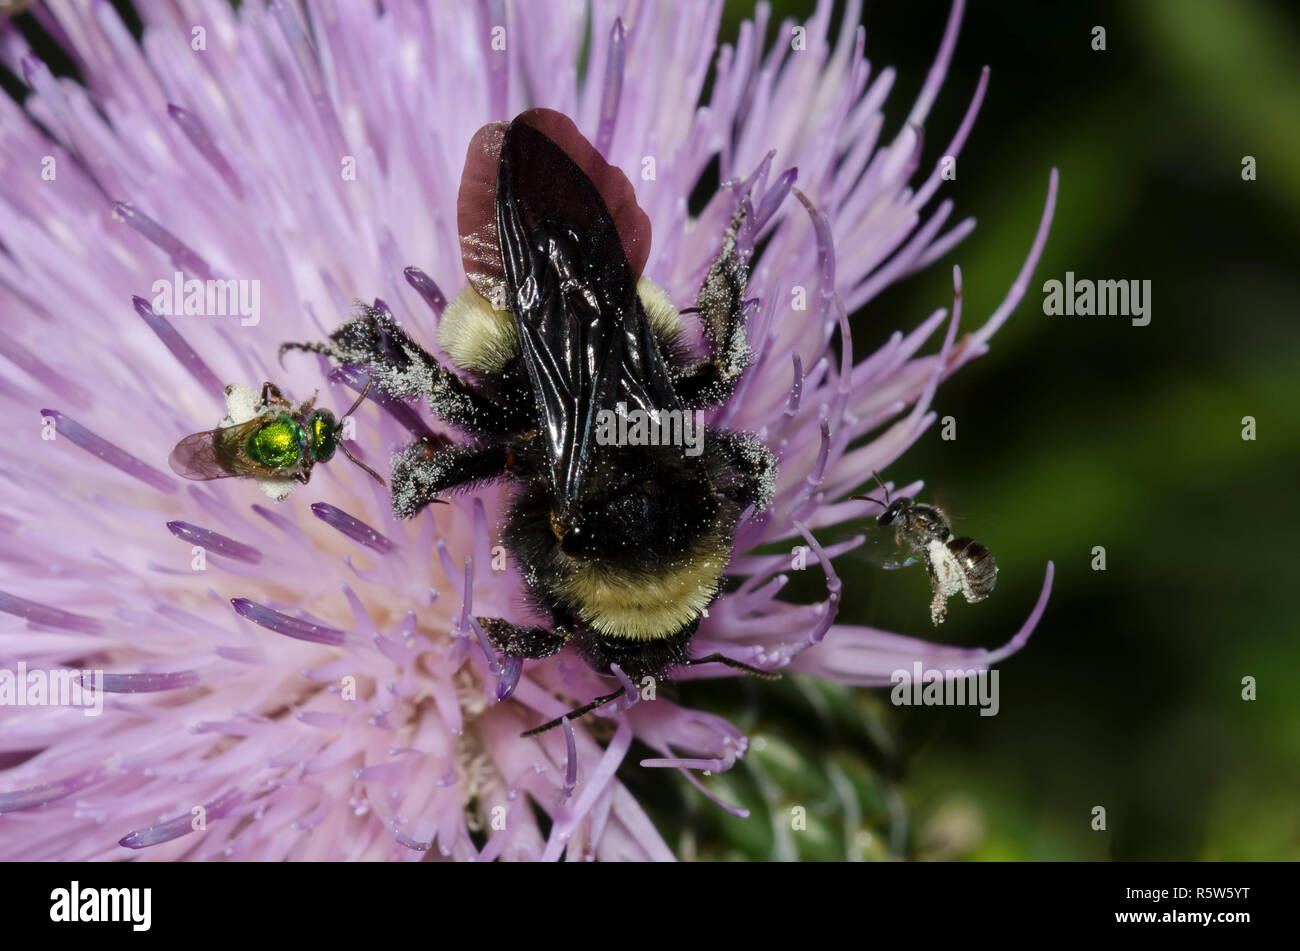 American Bumble Bee, Bombus pensylvanicus,  and two Sweat Bees, Family Halictidae, on tall thistle, Cirsium altissimum - Stock Image